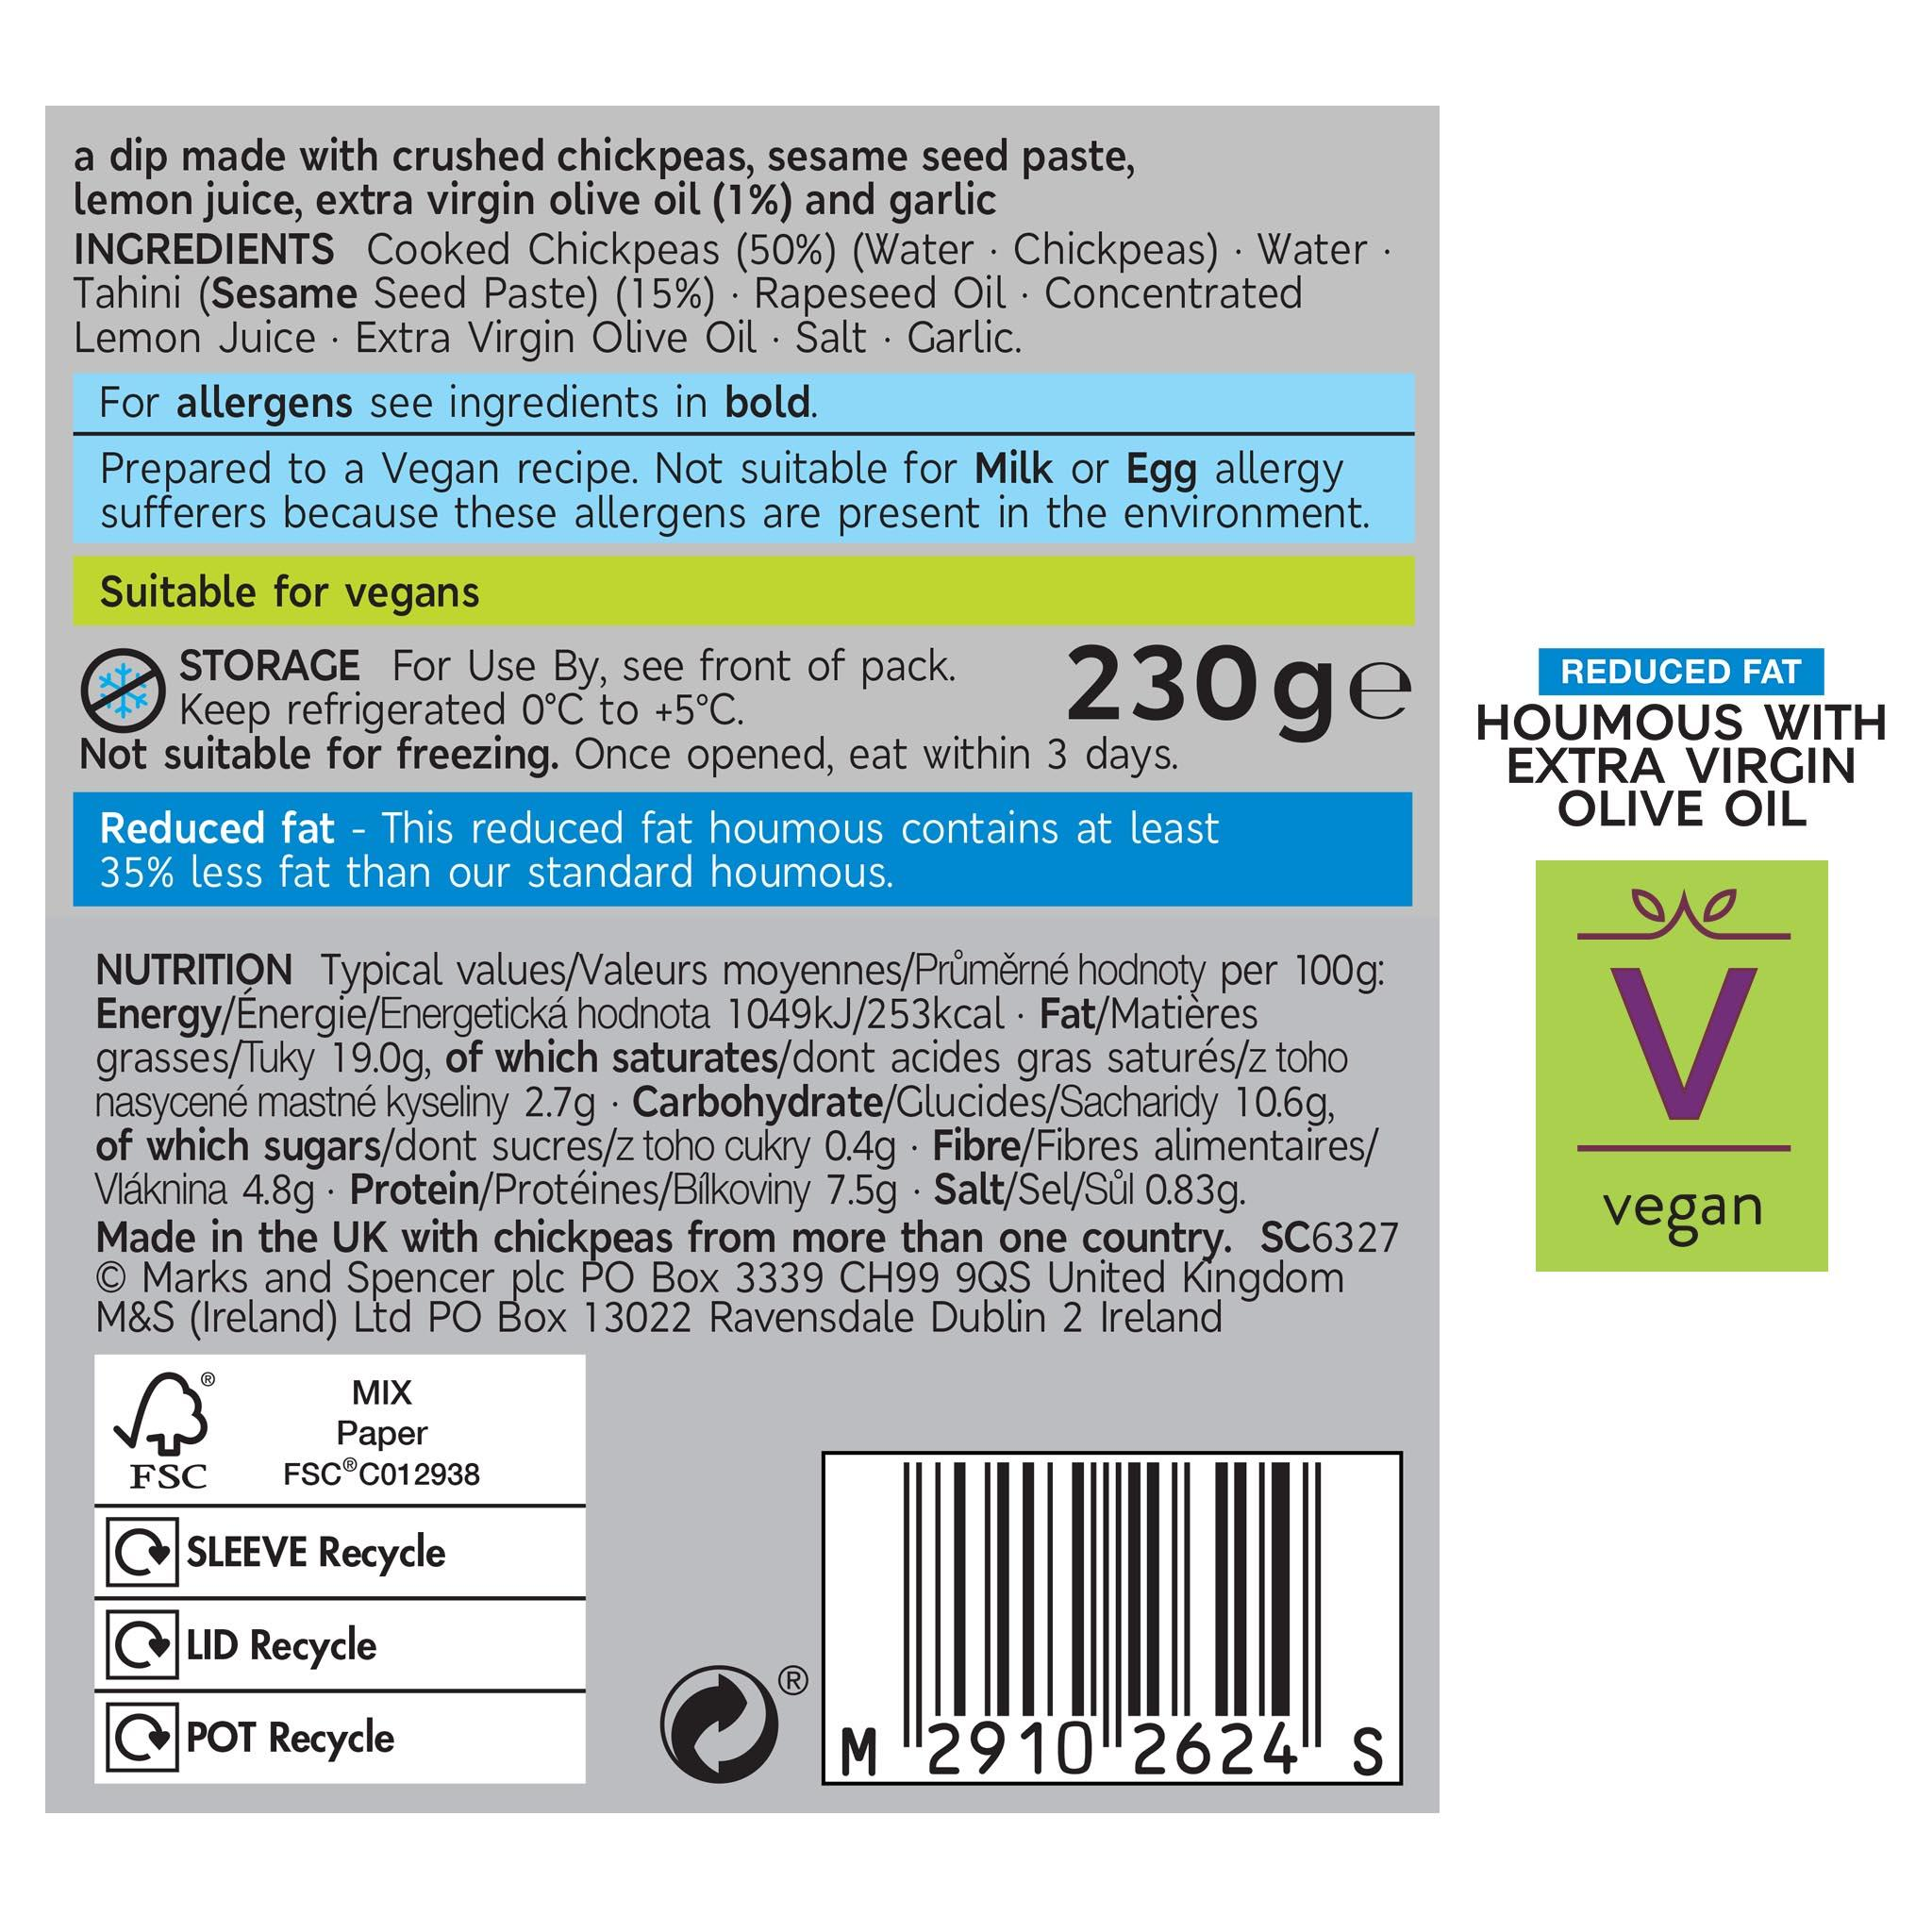 Reduced Fat Extra Virgin Olive Oil Houmous Label